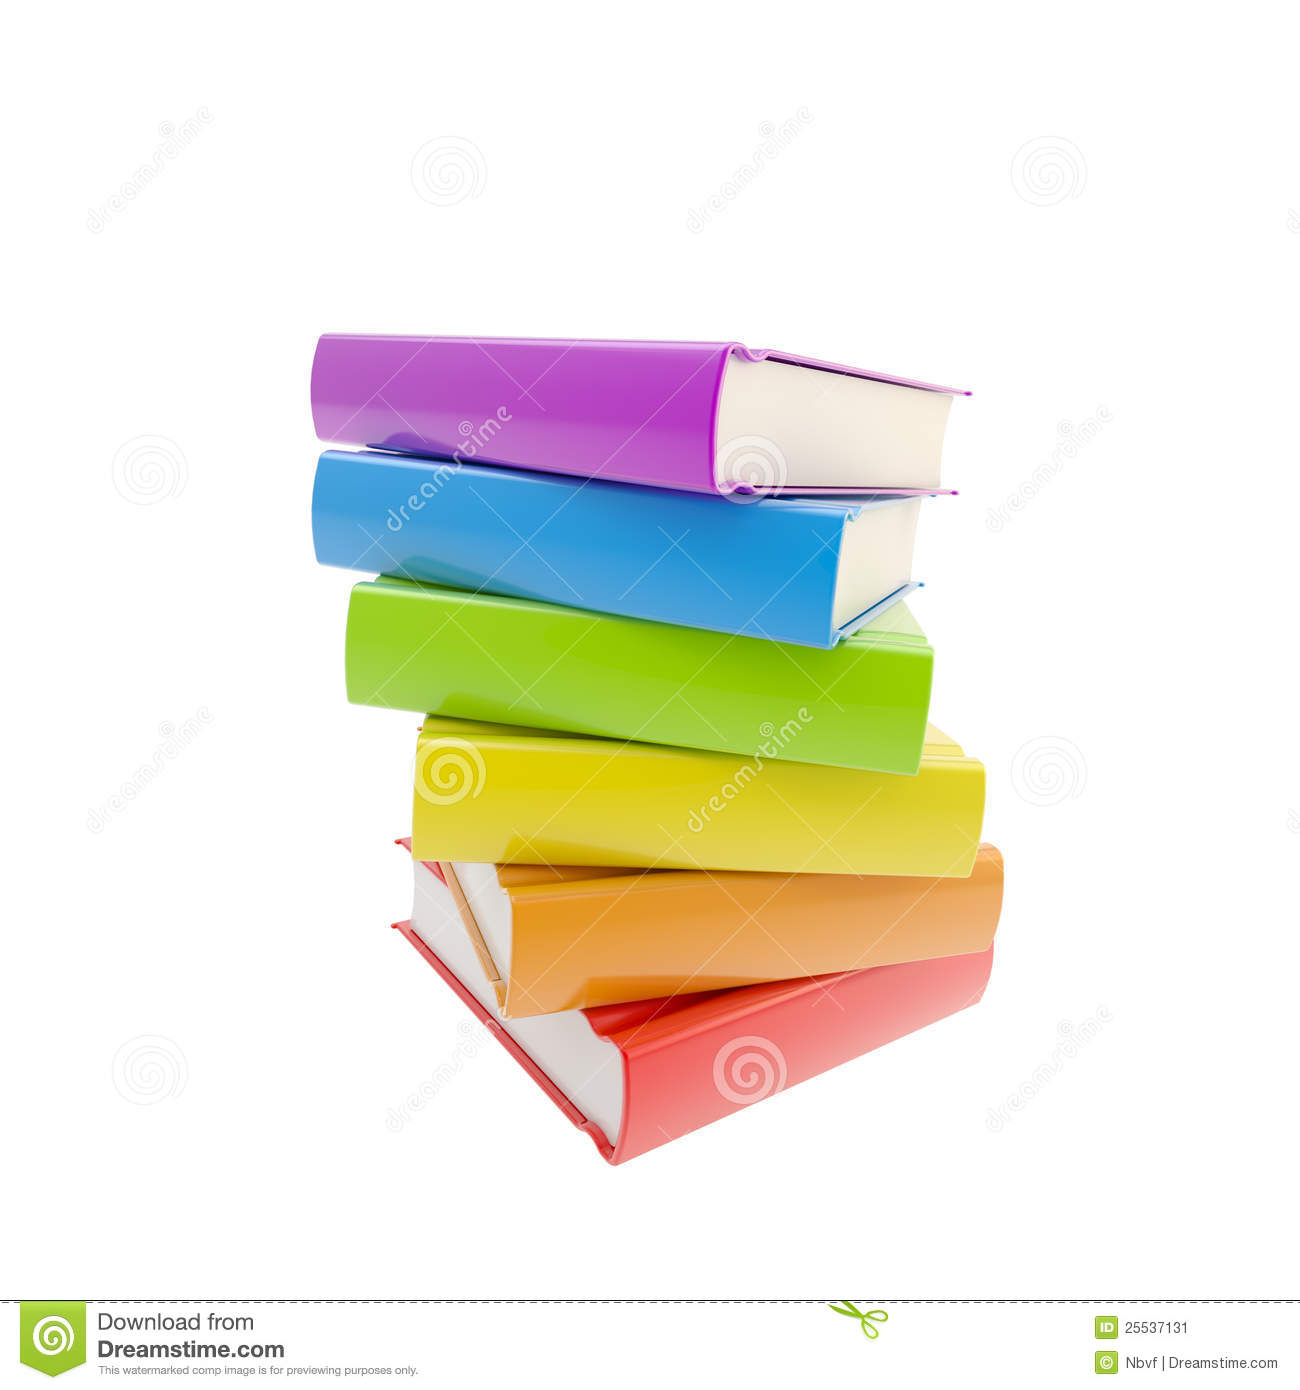 Pile of rainbow colored glossy books isolated